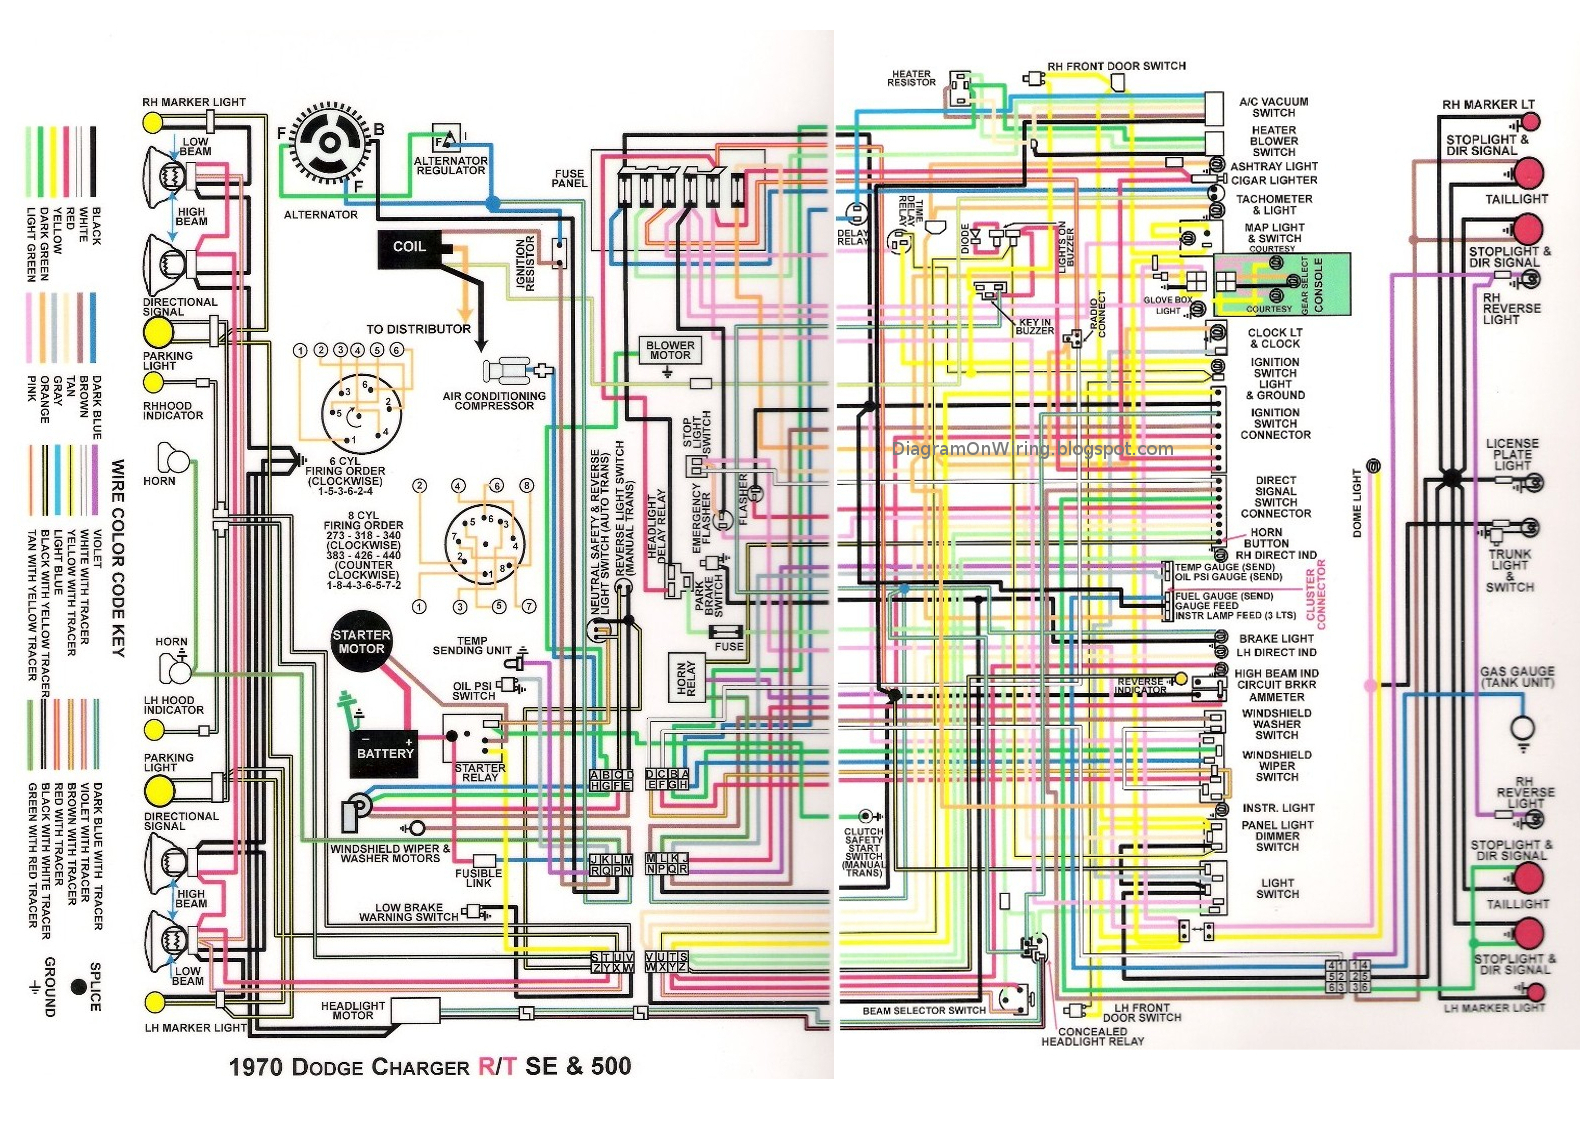 vw bus wiring diagrams vw bus engine diagram vw automotive wiring diagrams vw bus engine diagram